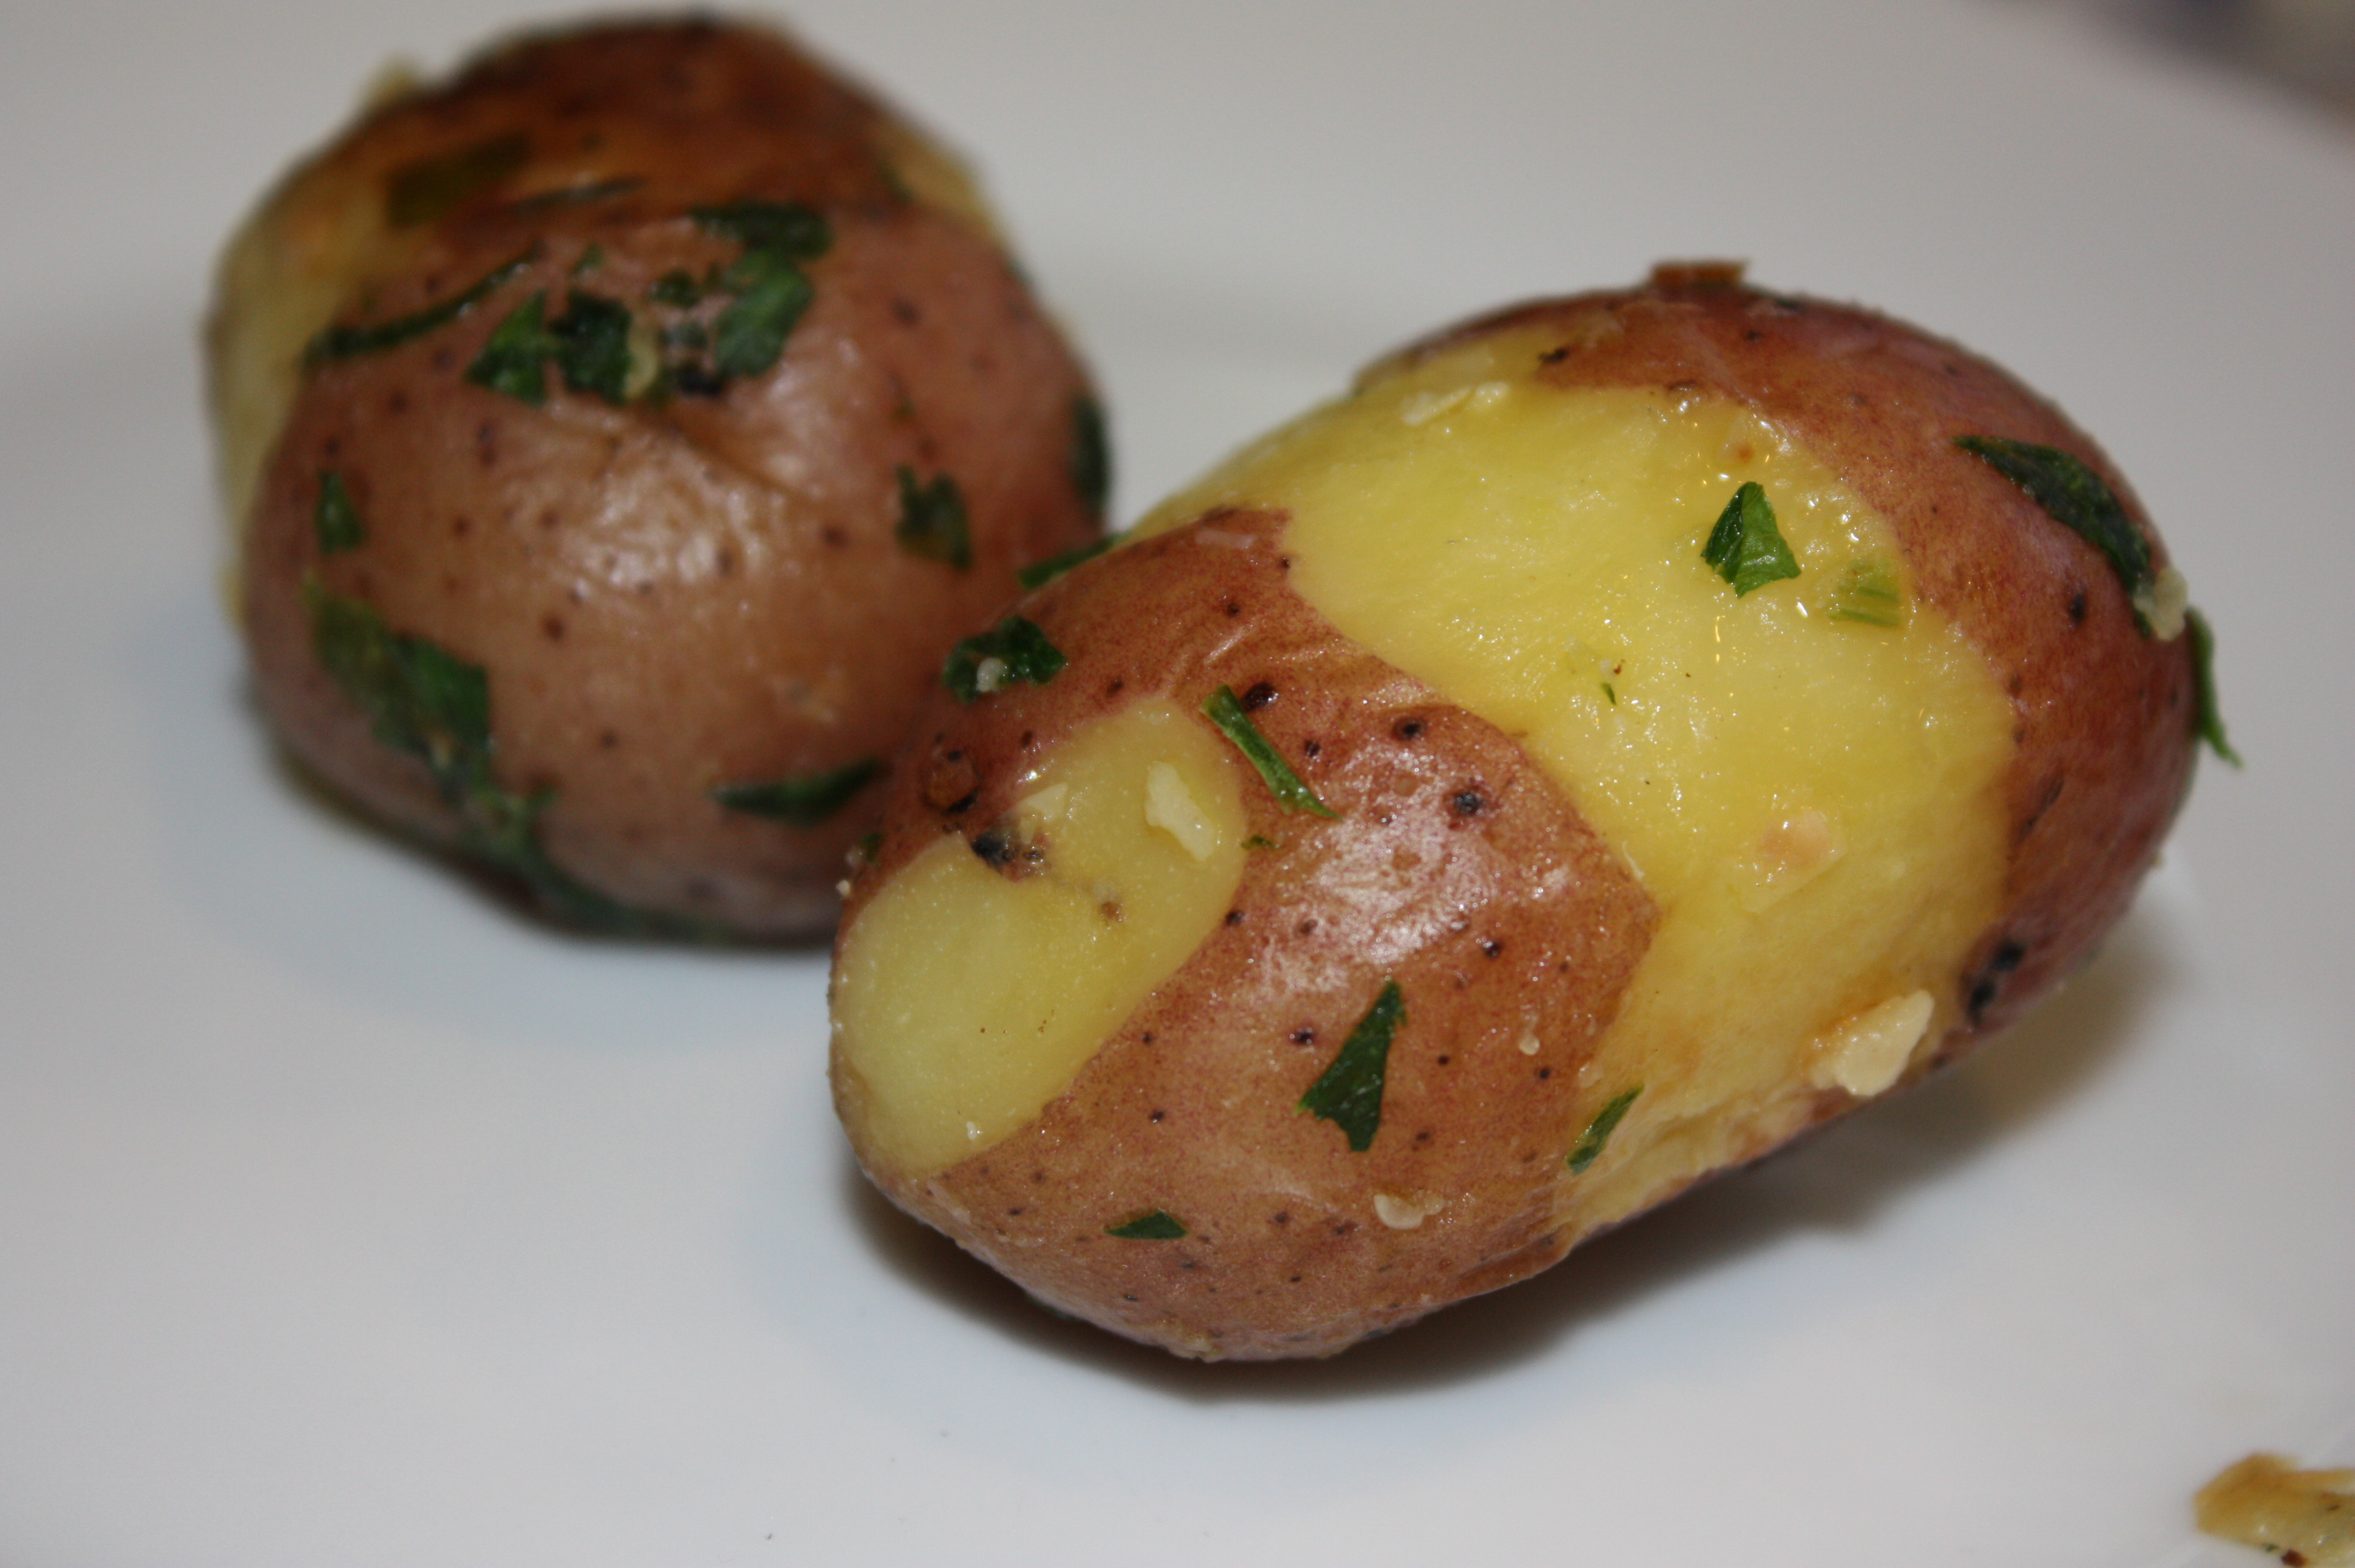 Steamed Sauteed Potatoes with Parsley and Garlic